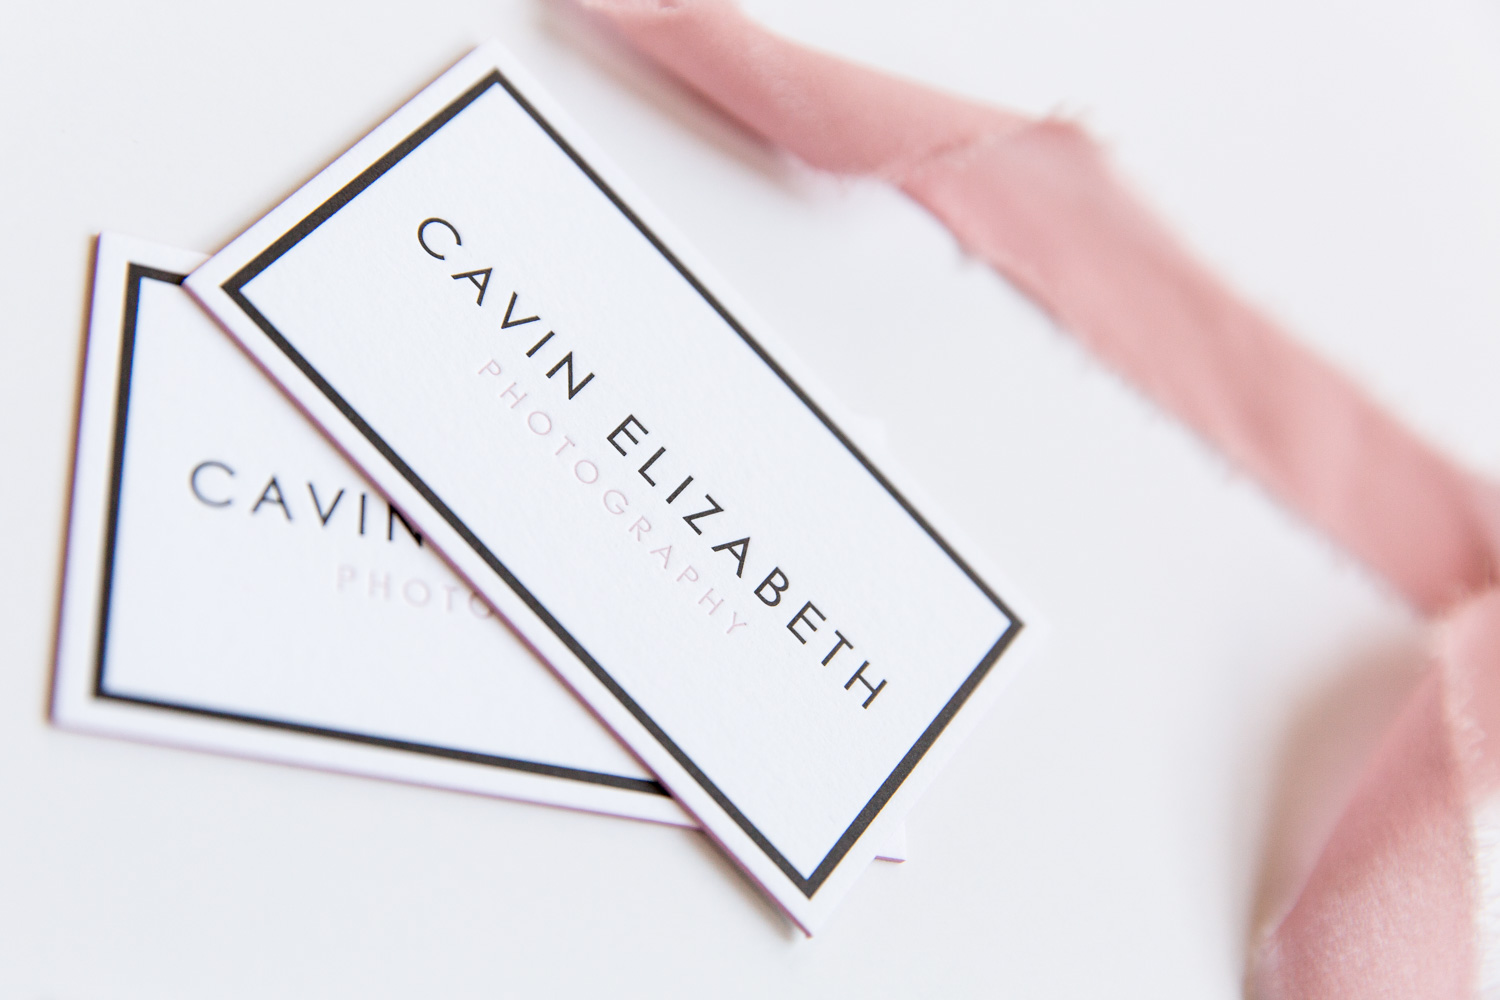 Cavin elizabeth letterpress business cards clove st press magicingreecefo Gallery